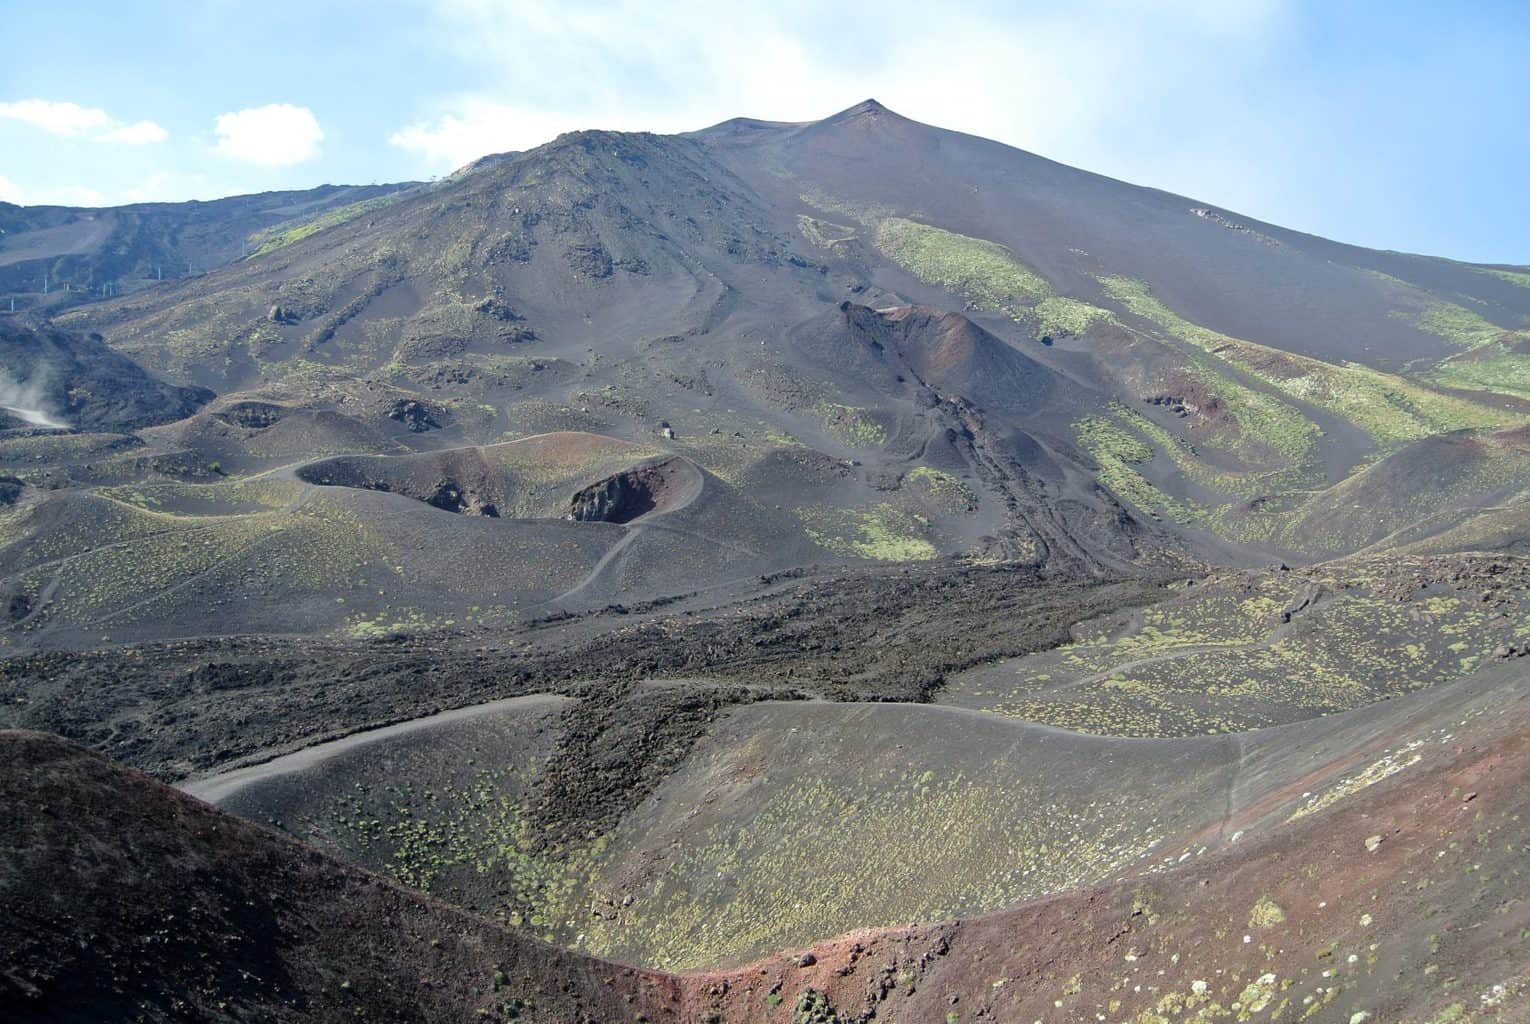 Southern Flank of Mount Etna, Sicily, Italy